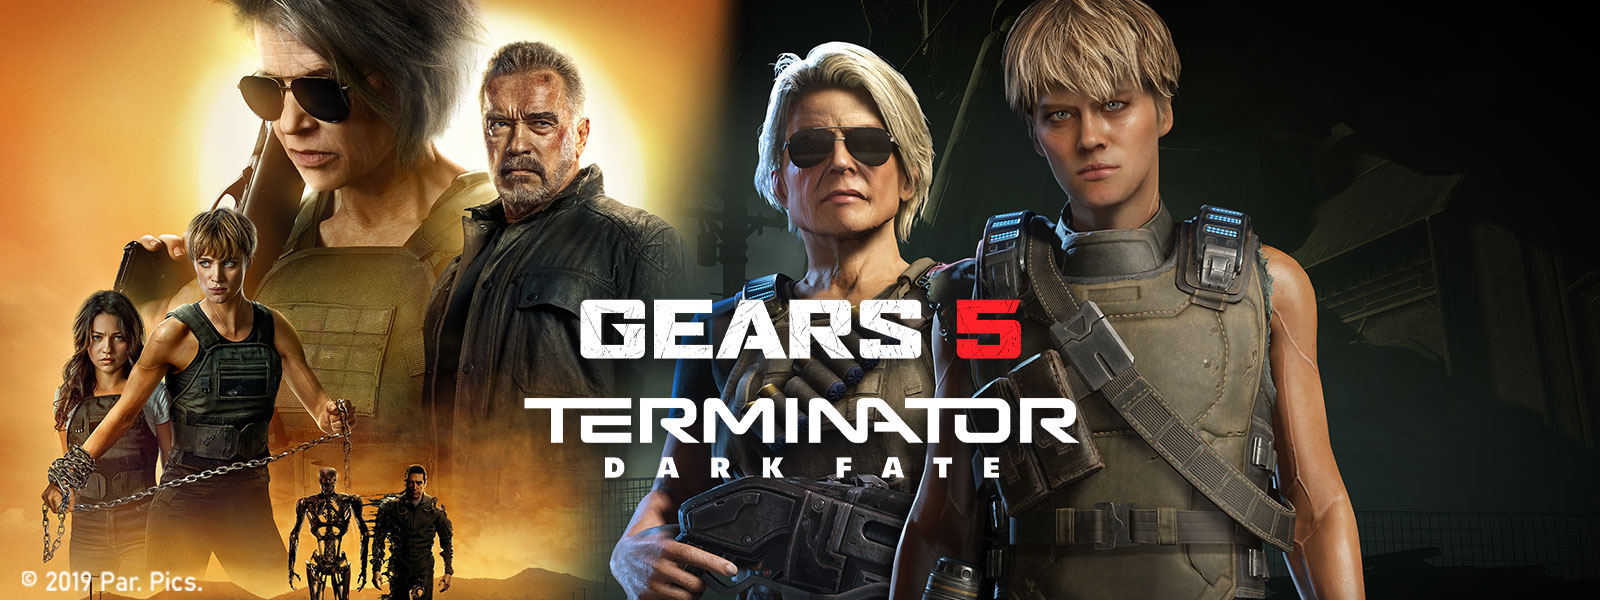 Gears 5, Terminator Dark Fate film poster with front view of in game characters Grace and the Rev-9 Terminator